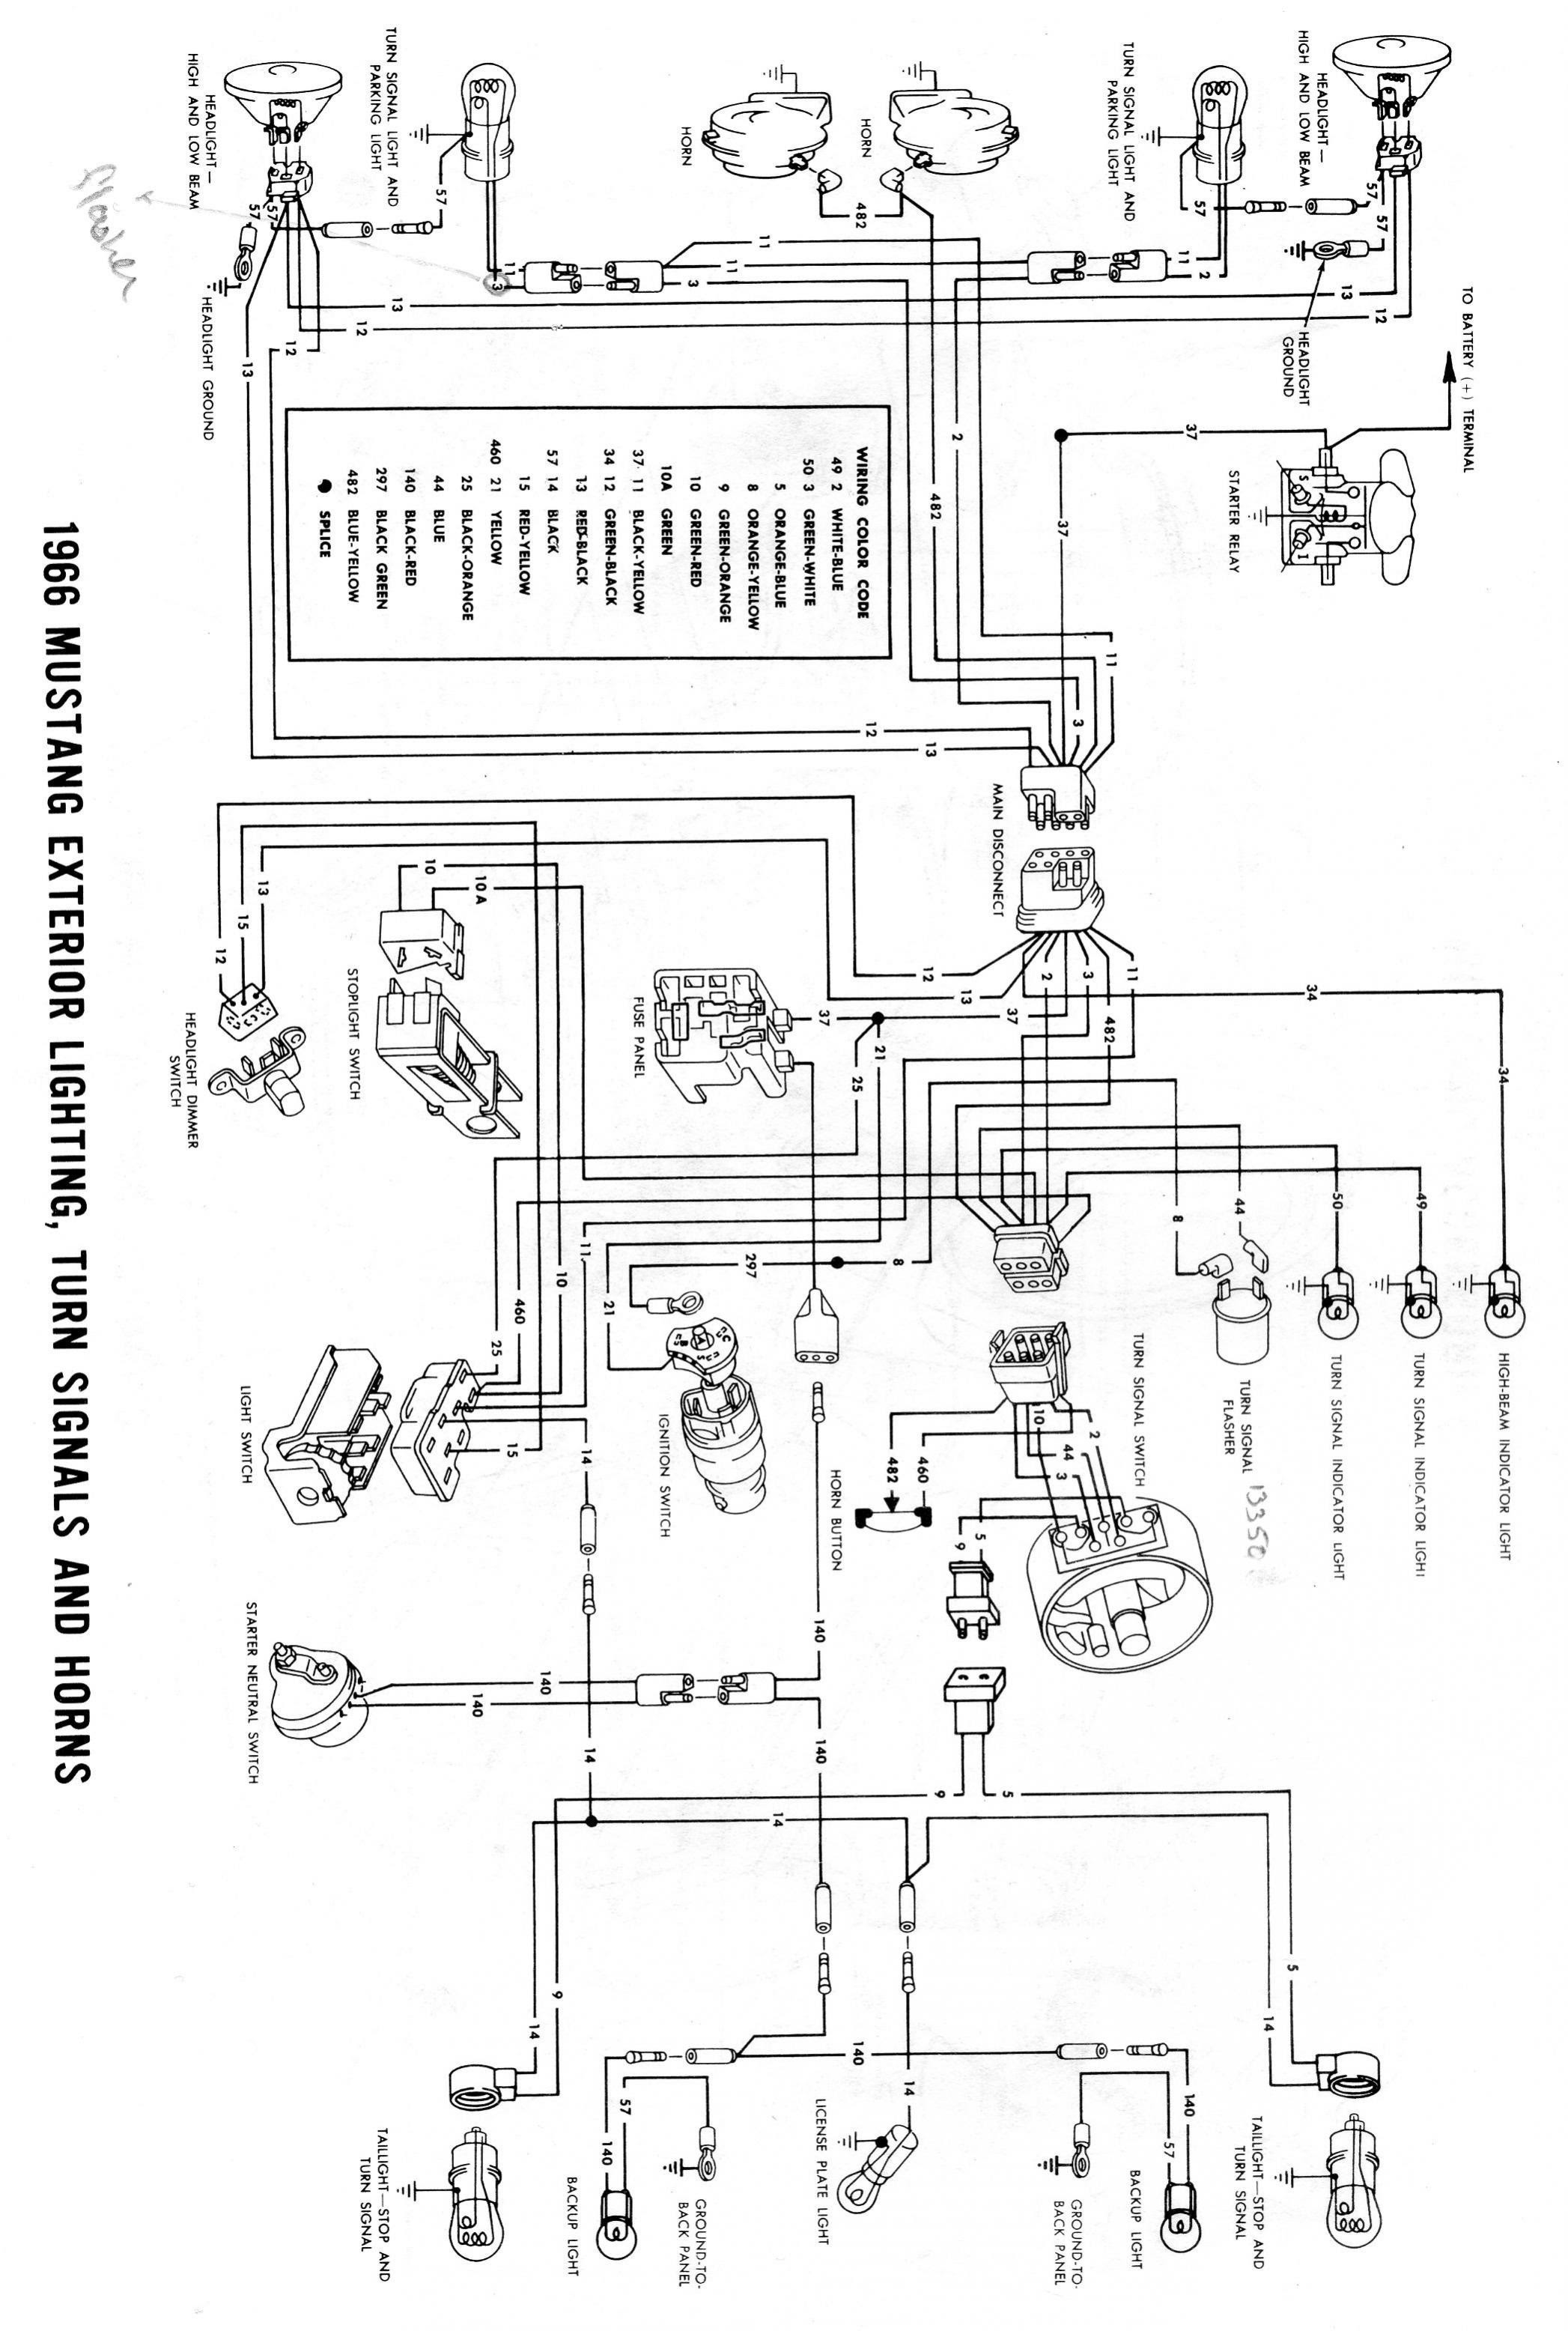 5498d0 03 Mustang Gt Fuse Diagram Wiring Library